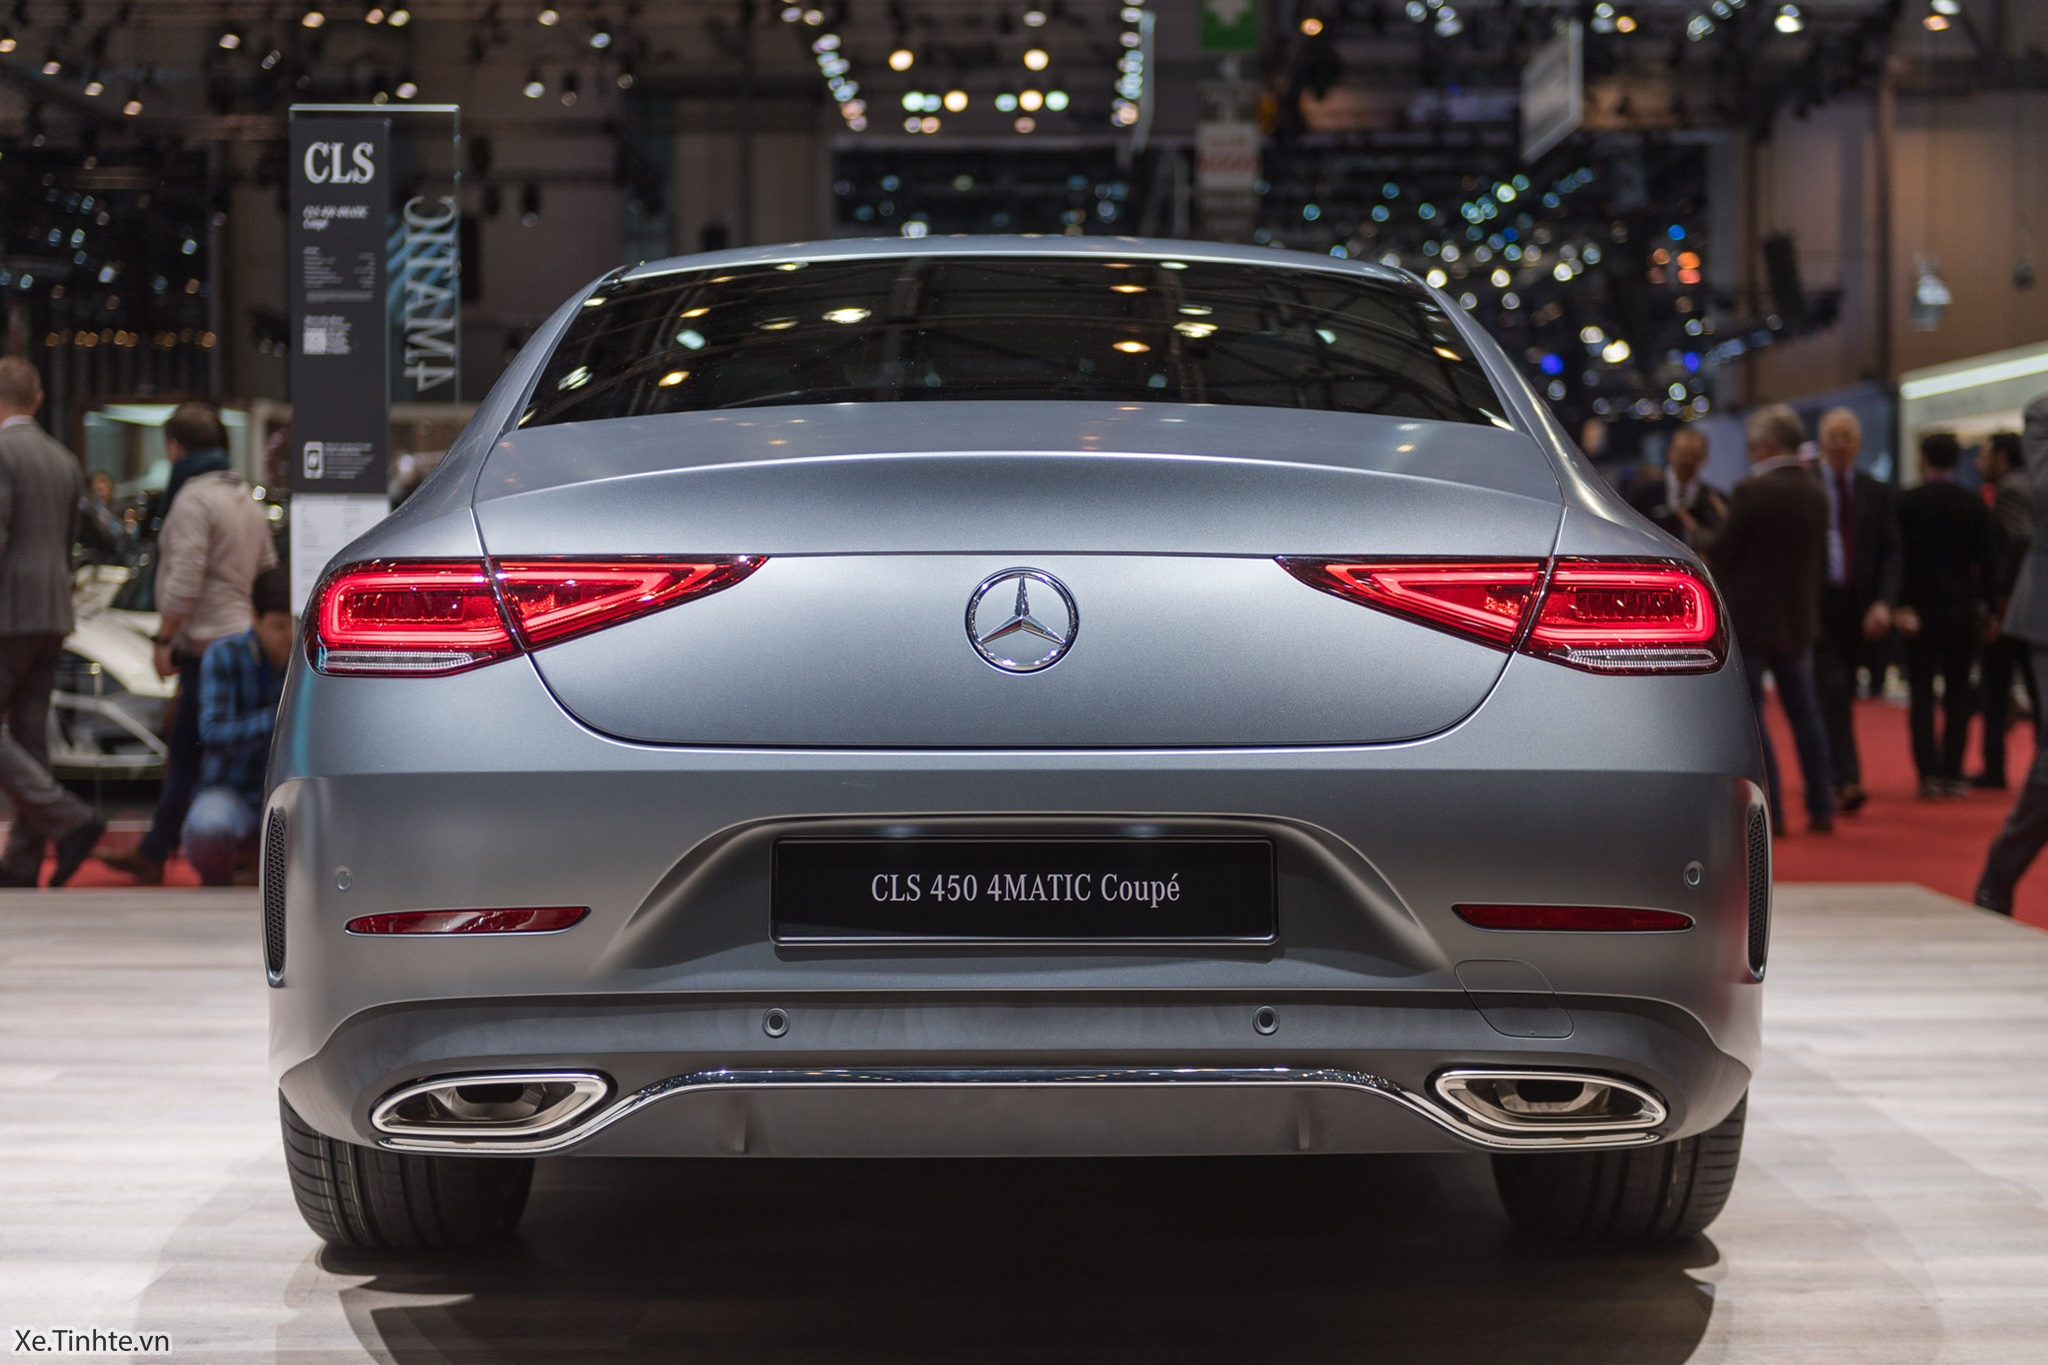 Mercedes_CLS_450_4MATIC_Coupe_Xe_Tinhte-008.jpg